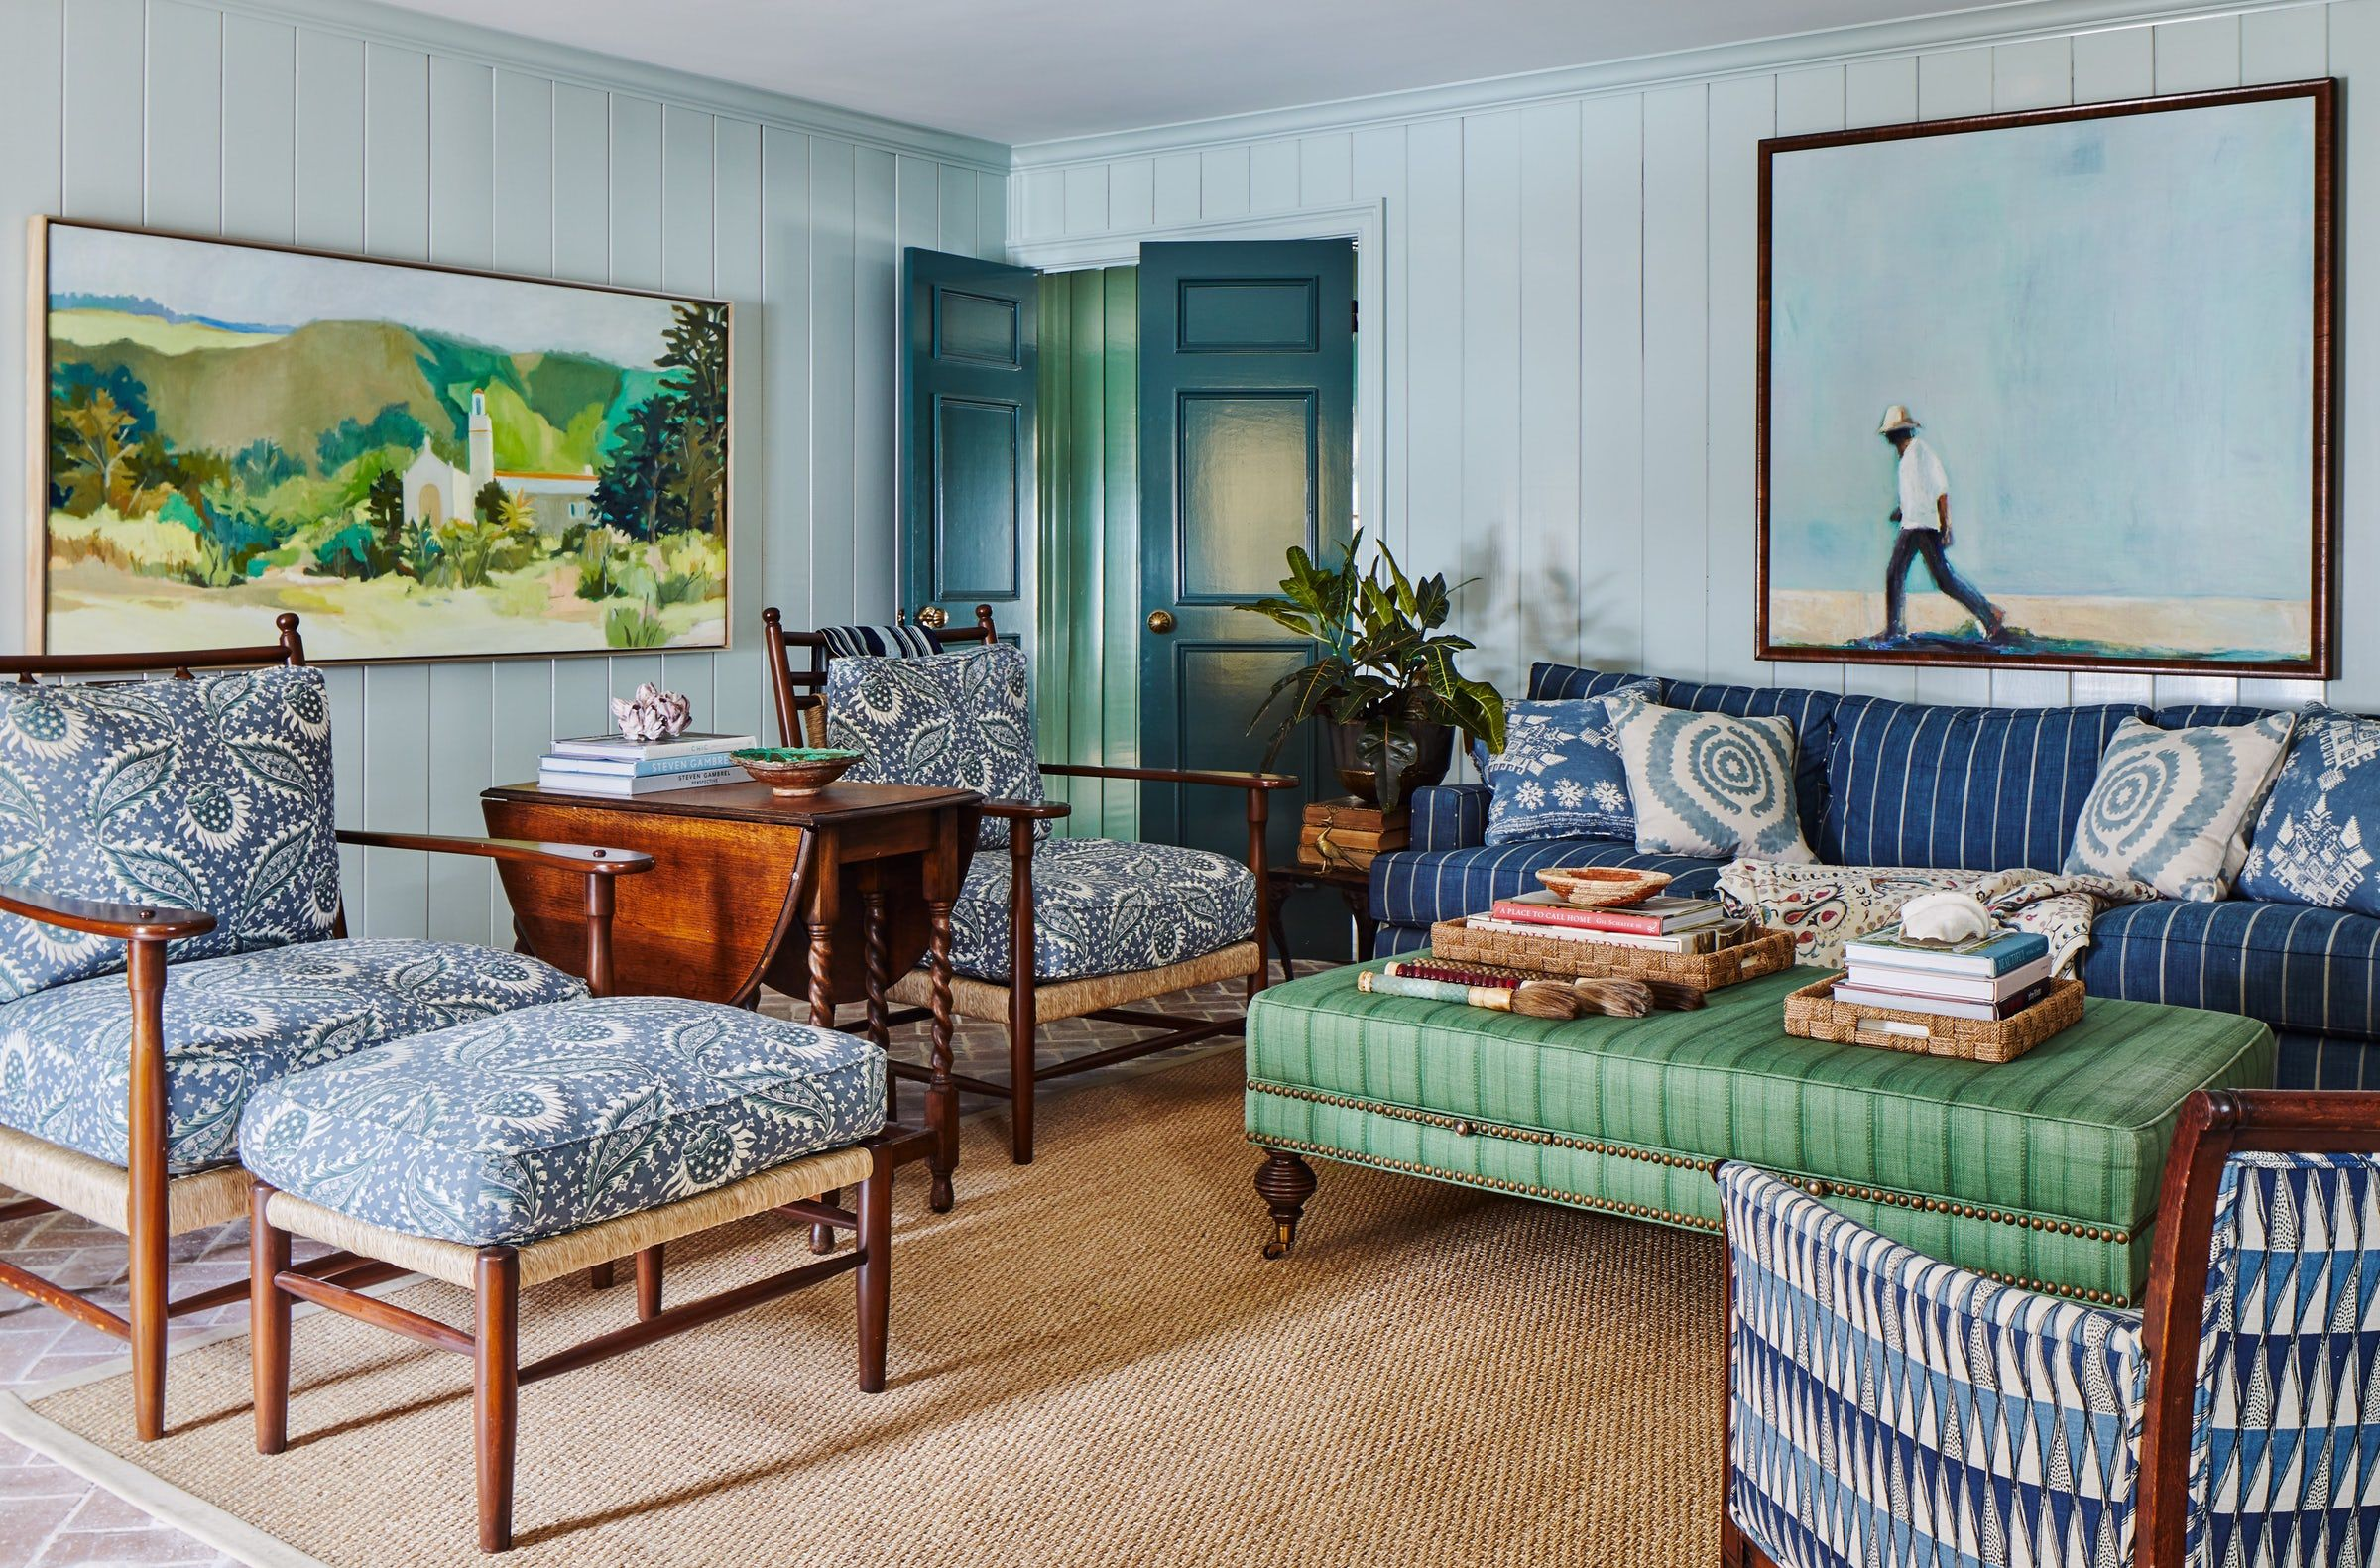 The Most Popular Living Room Paint Colors According To Our Readers Paint Colors For Living Room Popular Living Room Living Room Paint